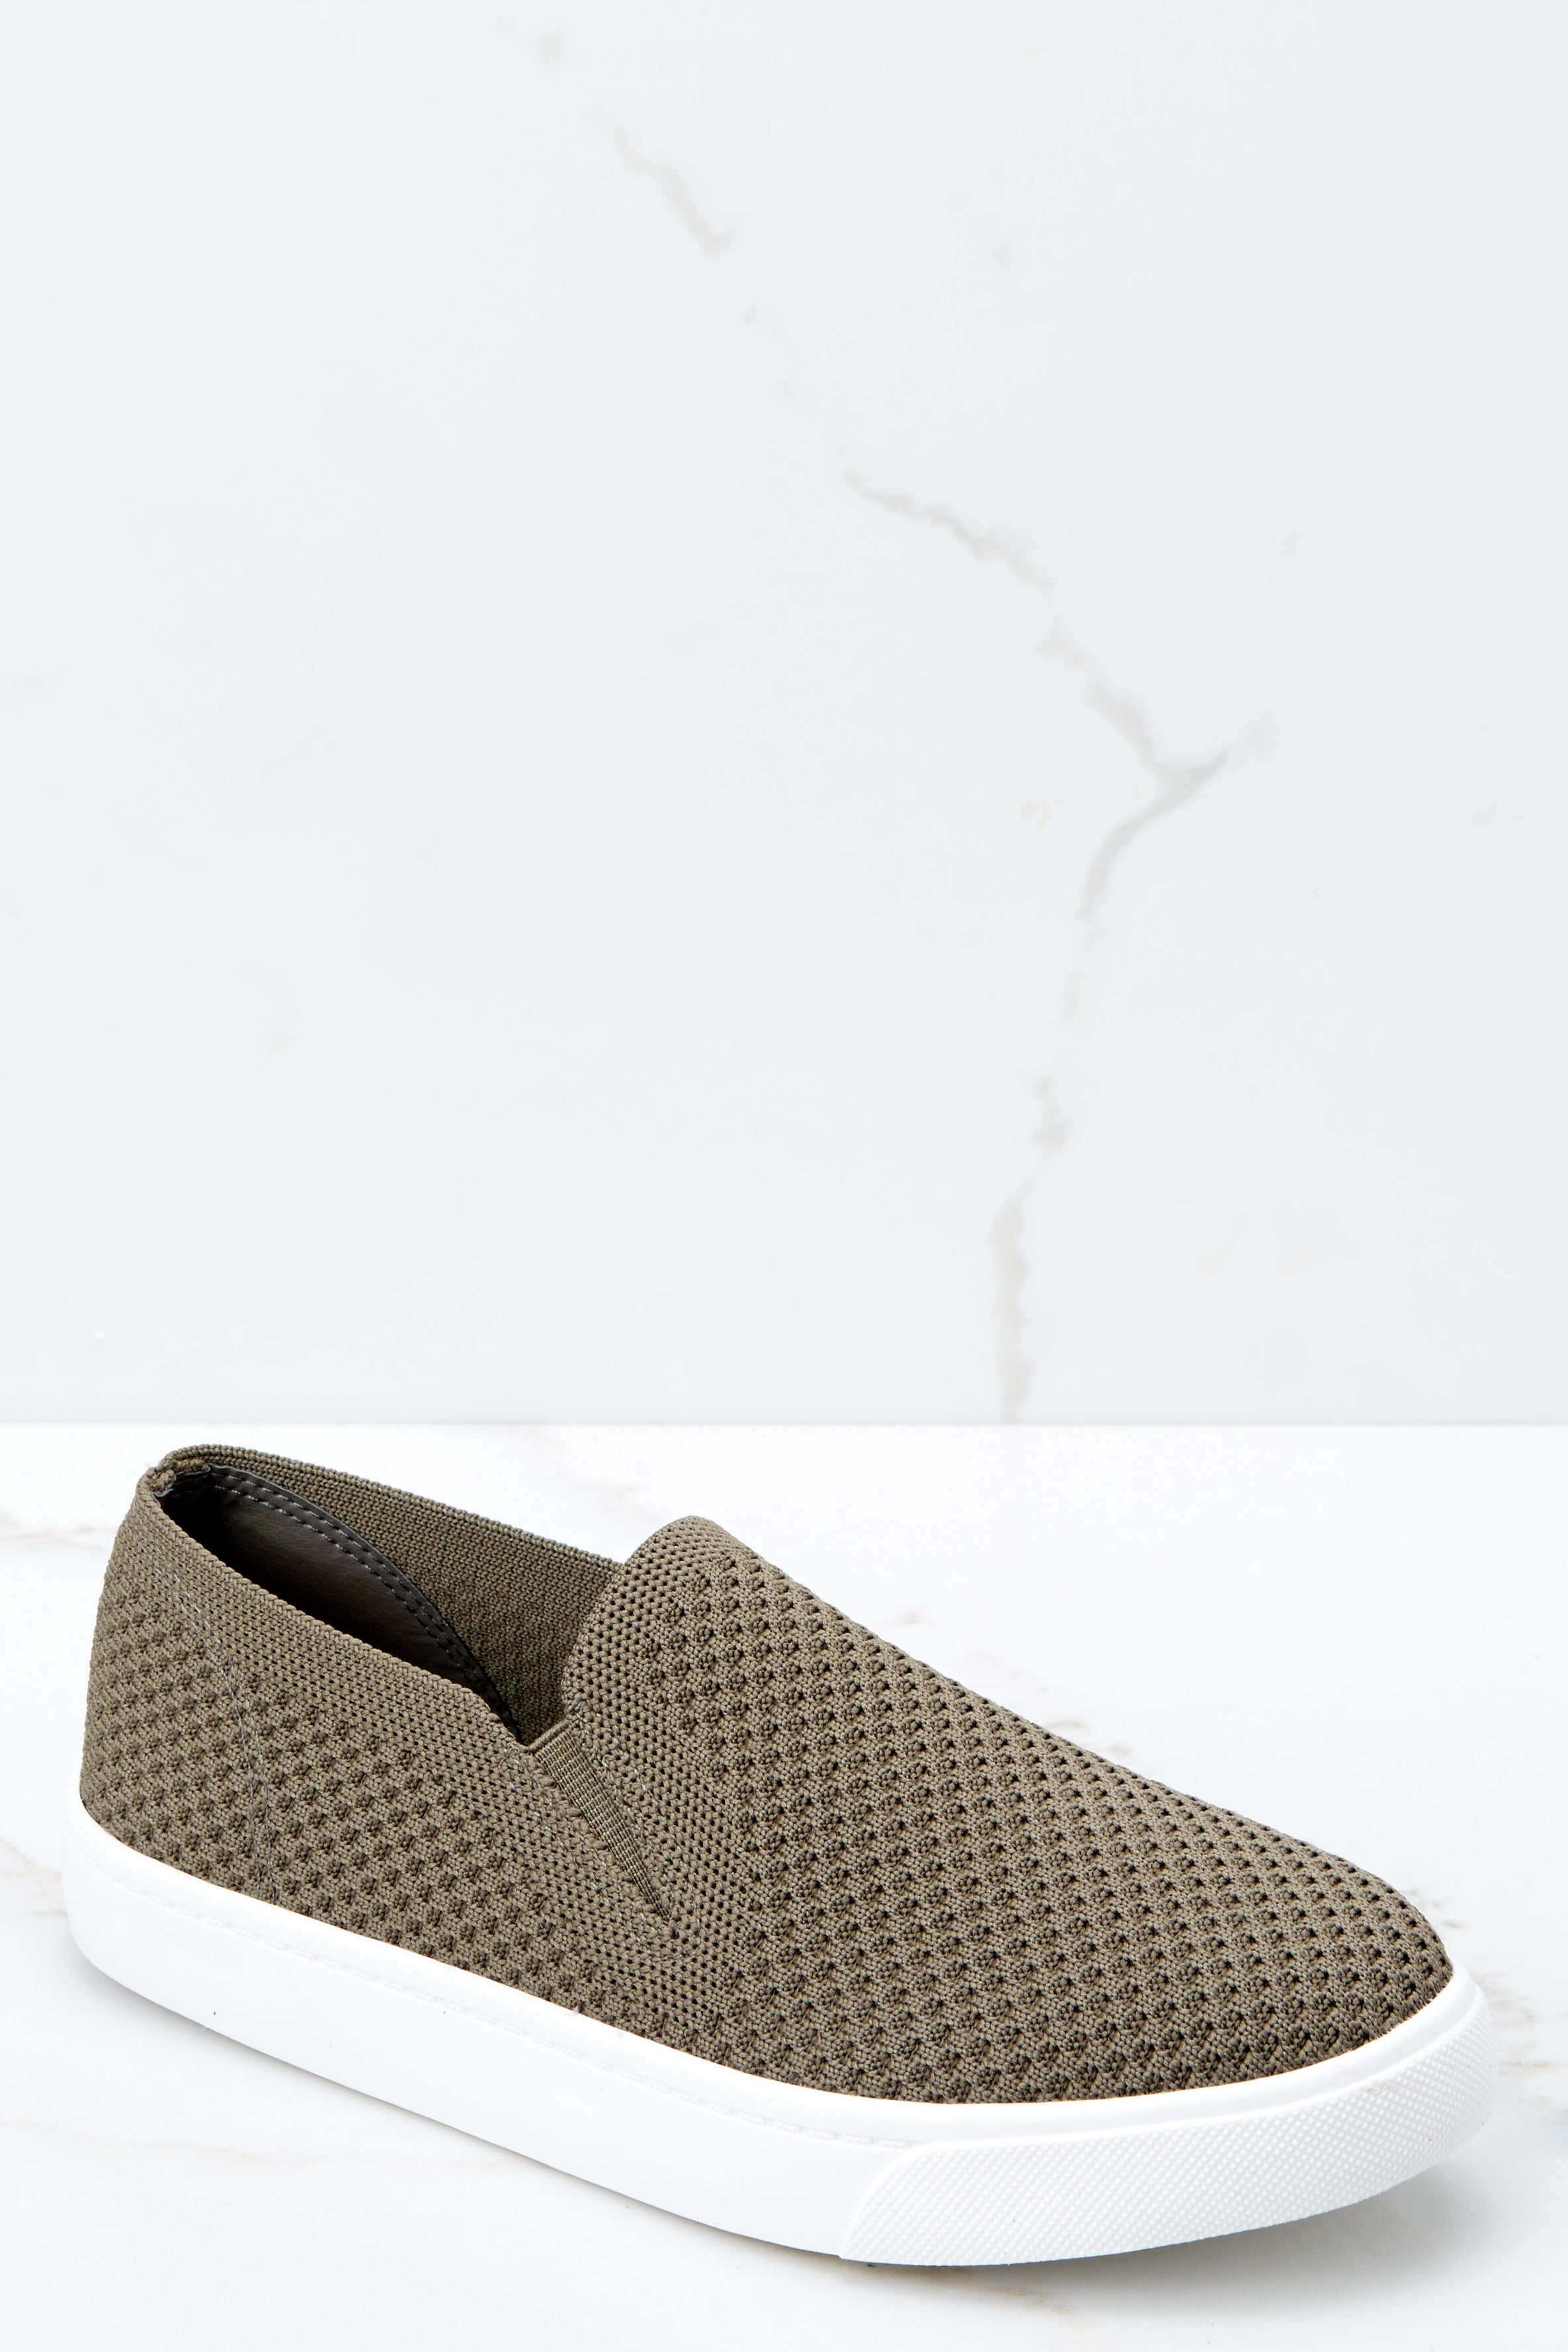 1 At A Moment's Notice Olive Slip On Sneakers at reddressboutique.com